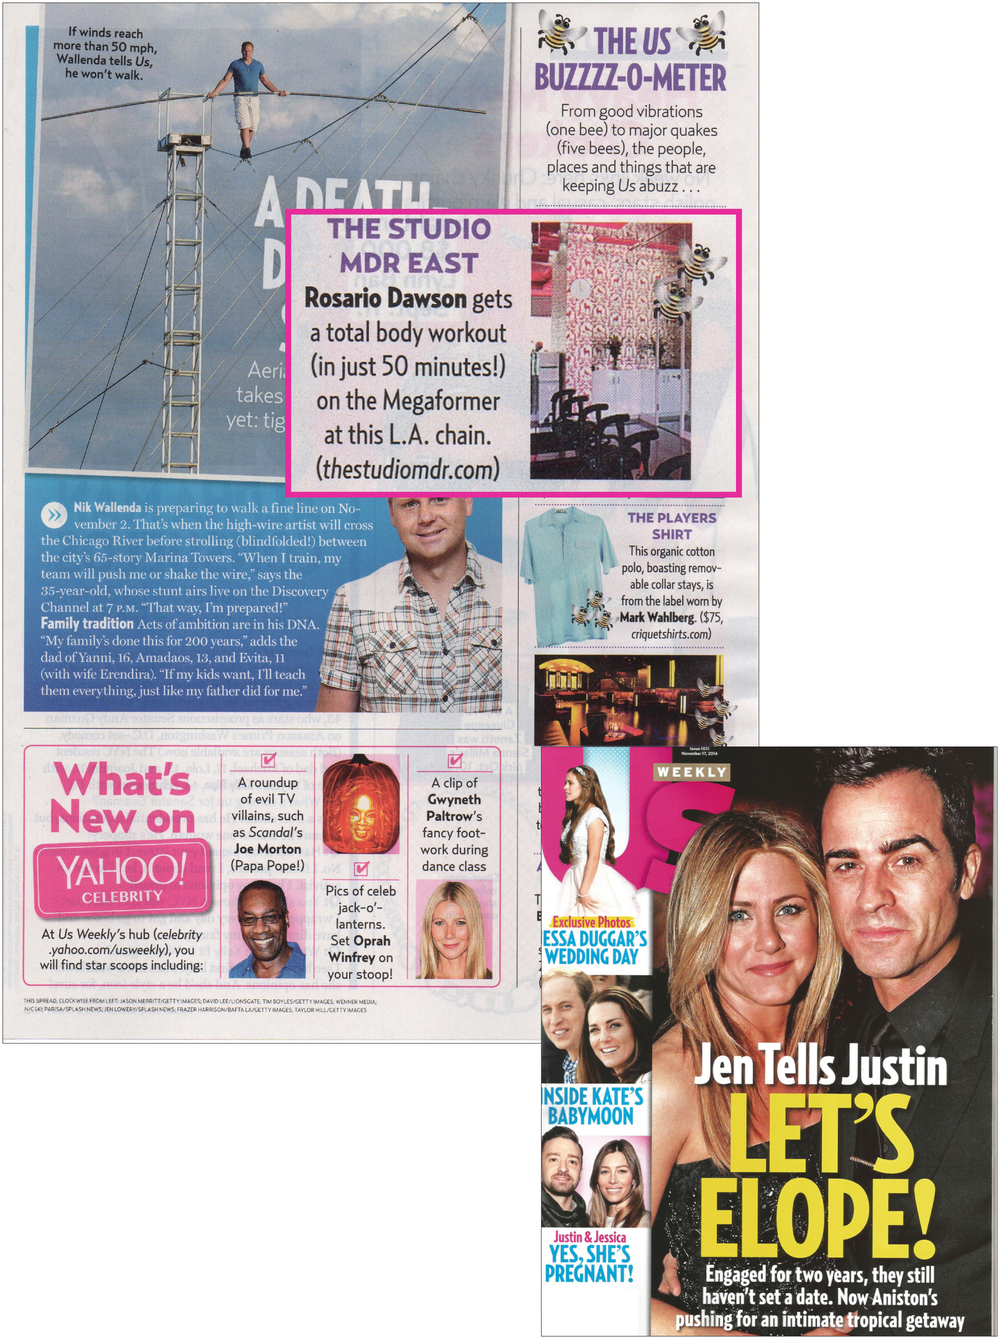 US Weekly article, Nov 14